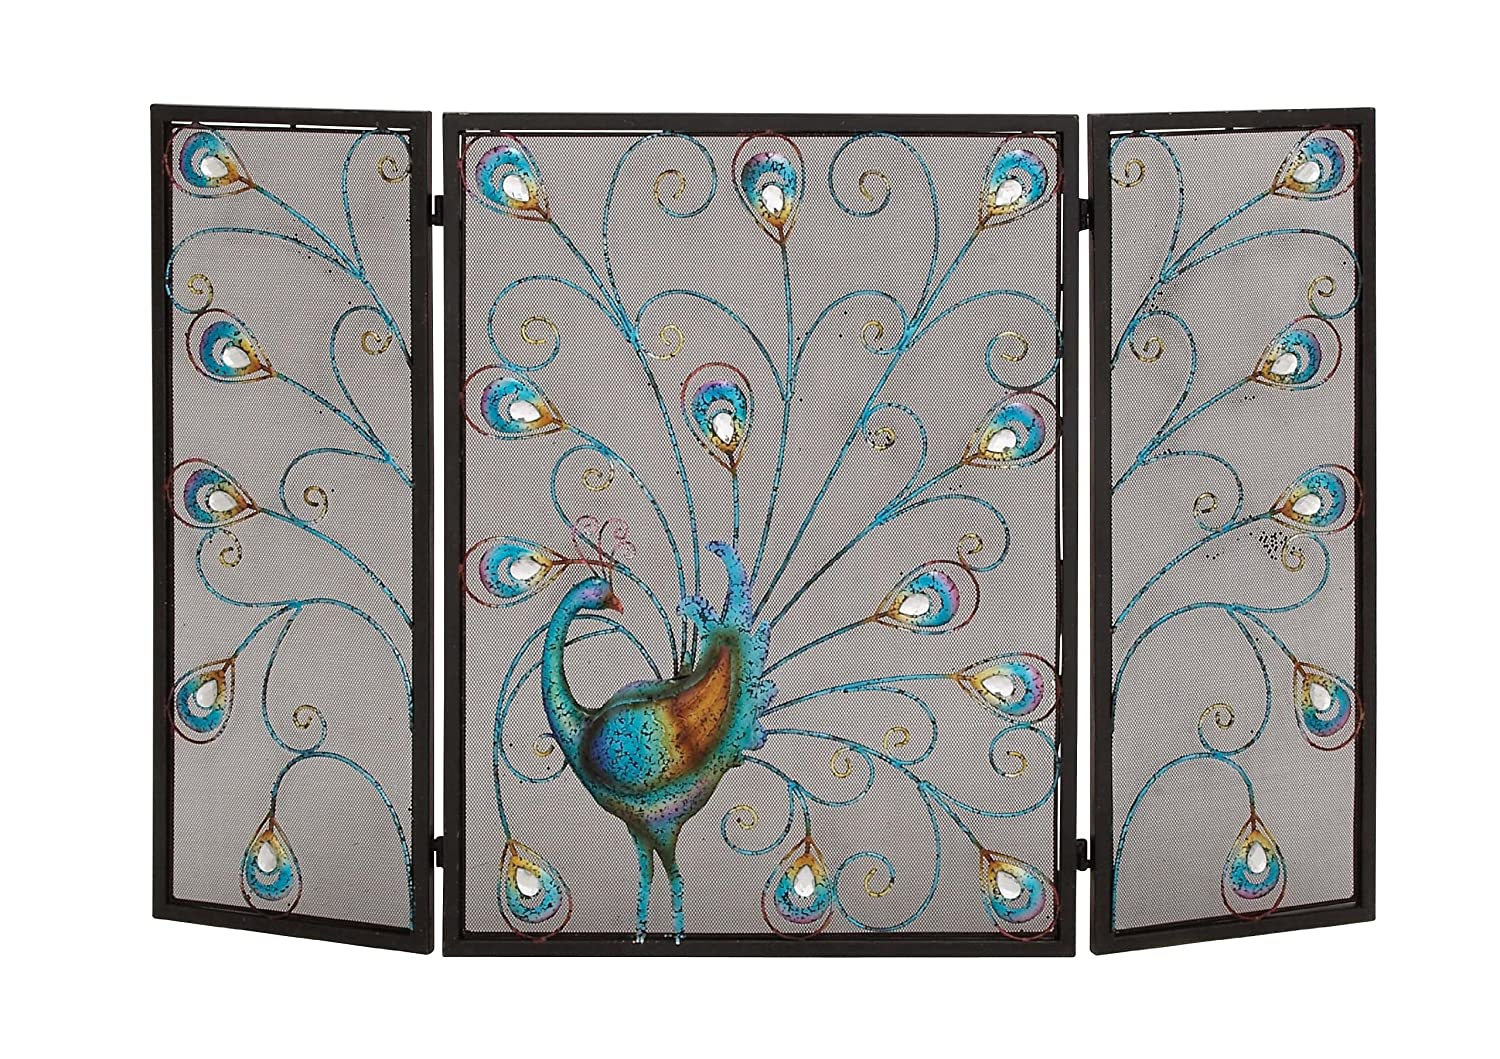 Amazon.com: Benzara The Colorful Metal Fireplace Screen: Home & Kitchen